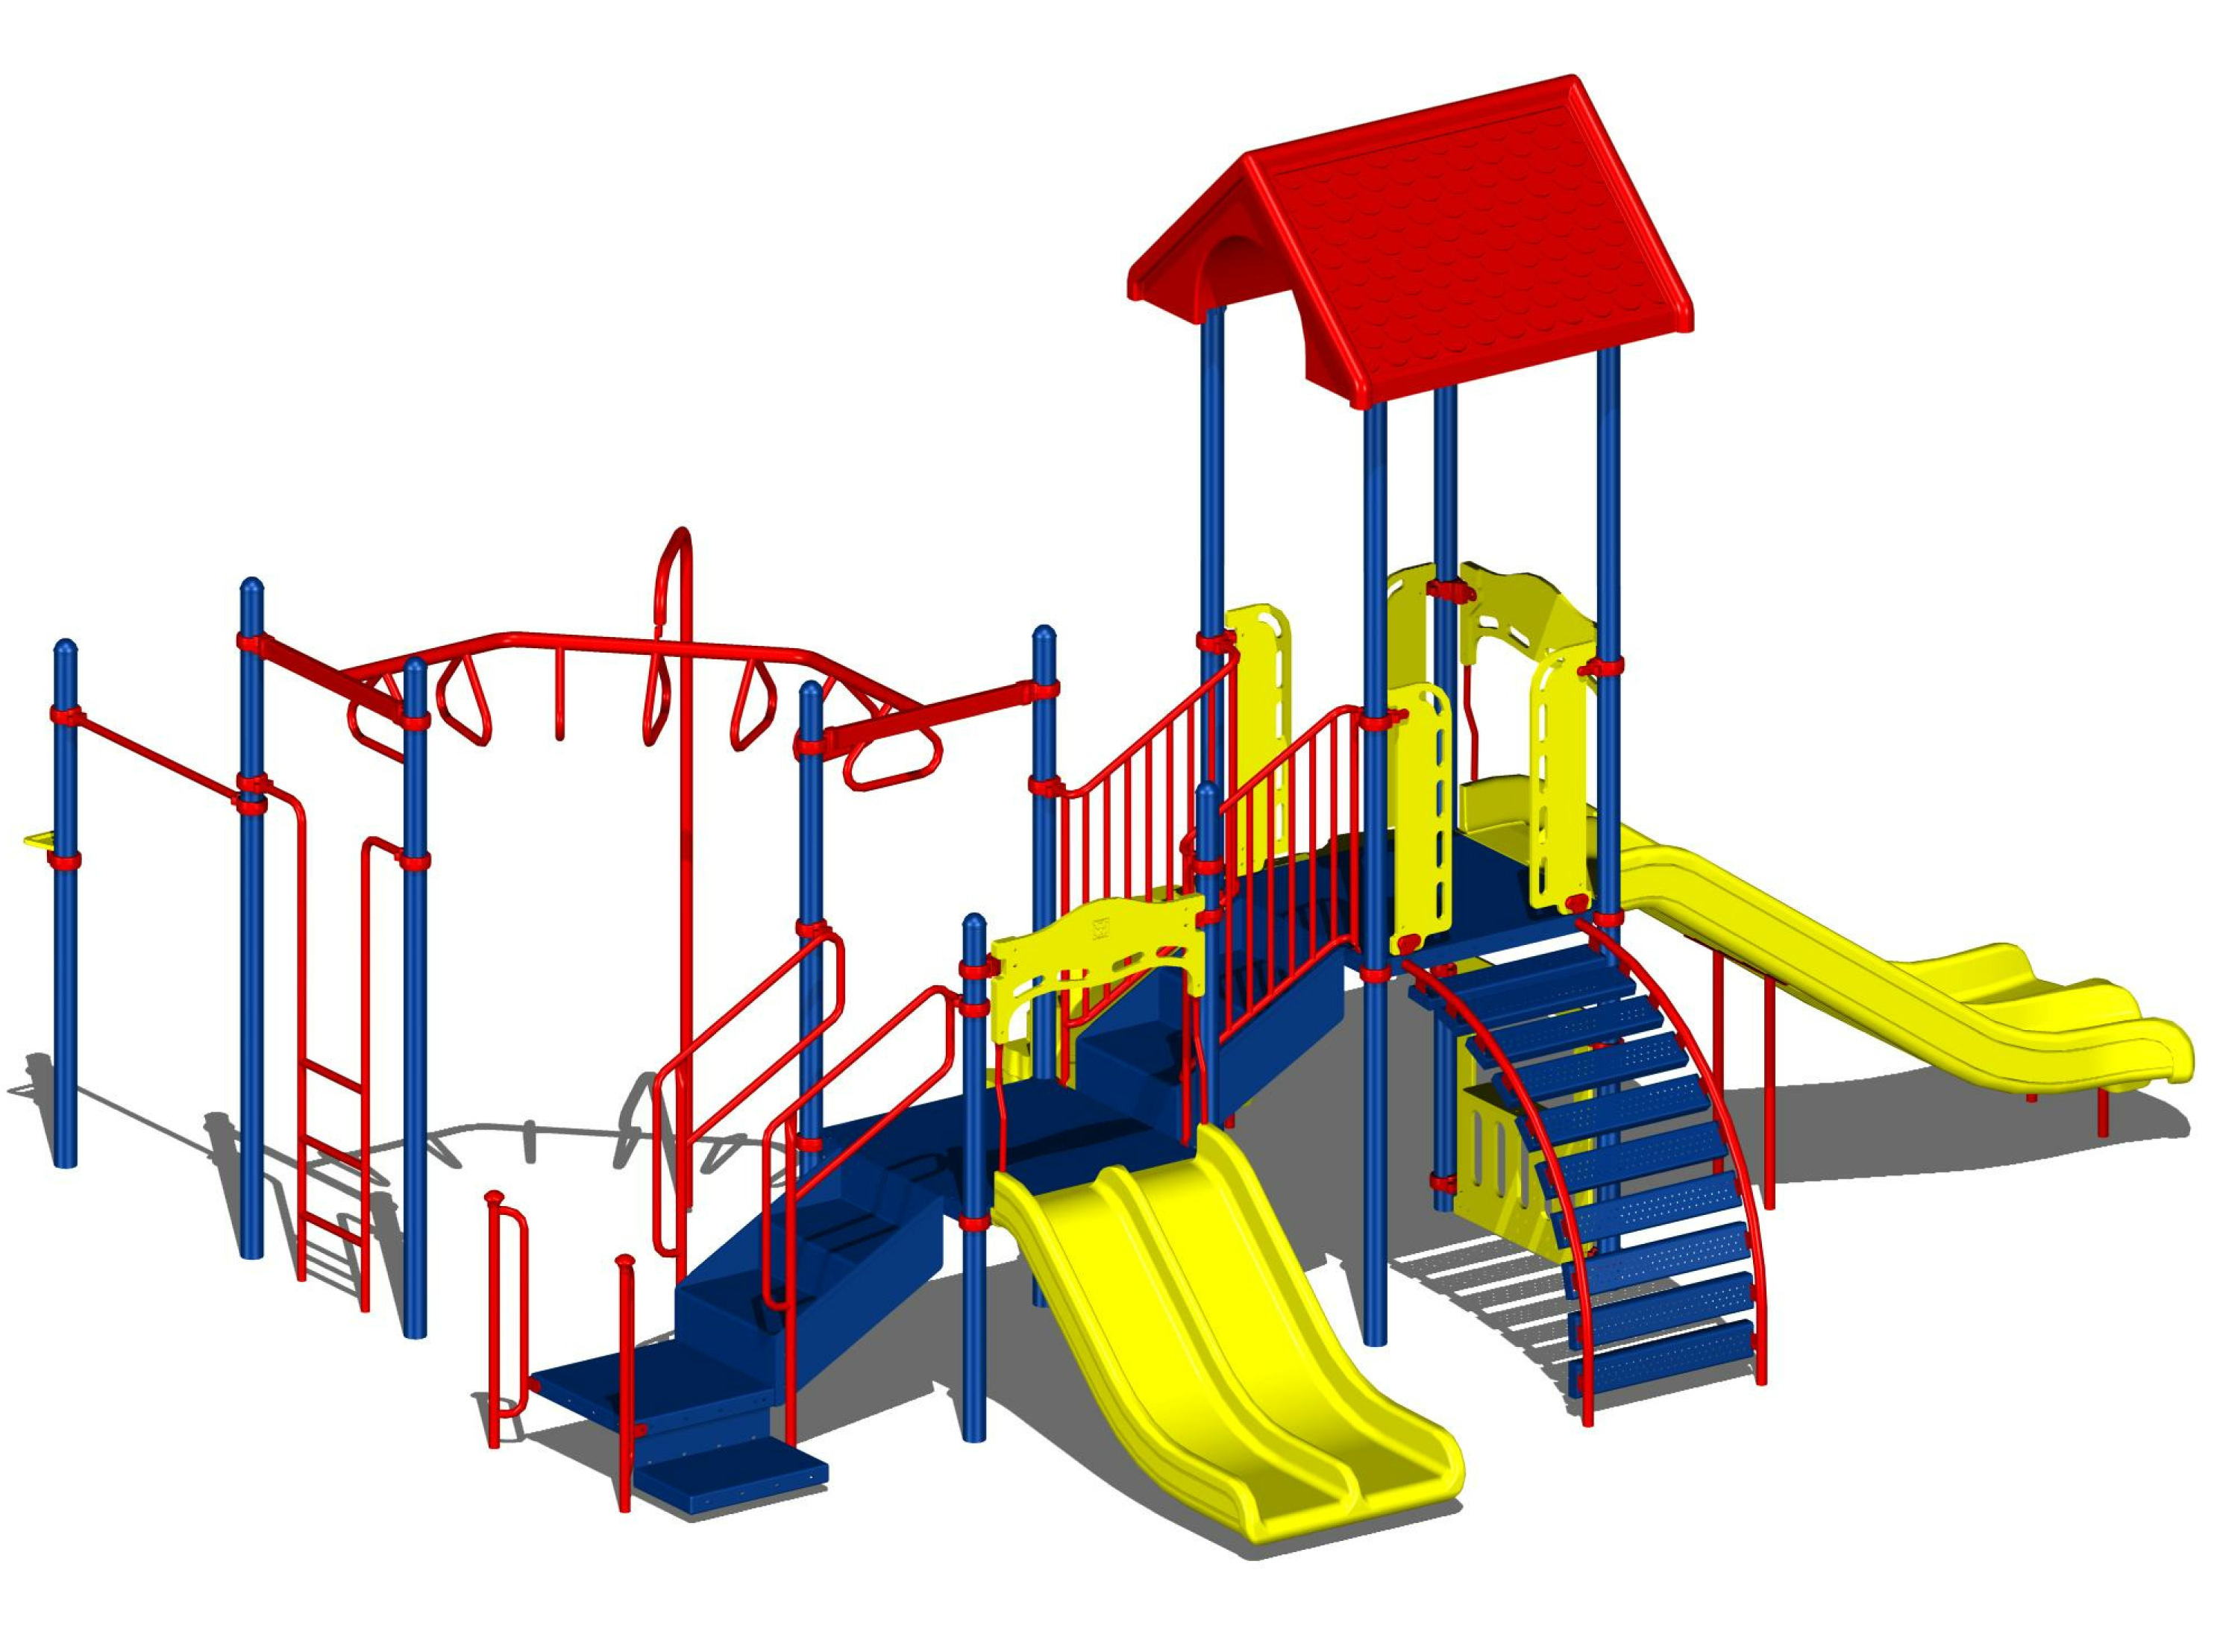 Playground Equipment   Clipart Panda   Free Clipart Images